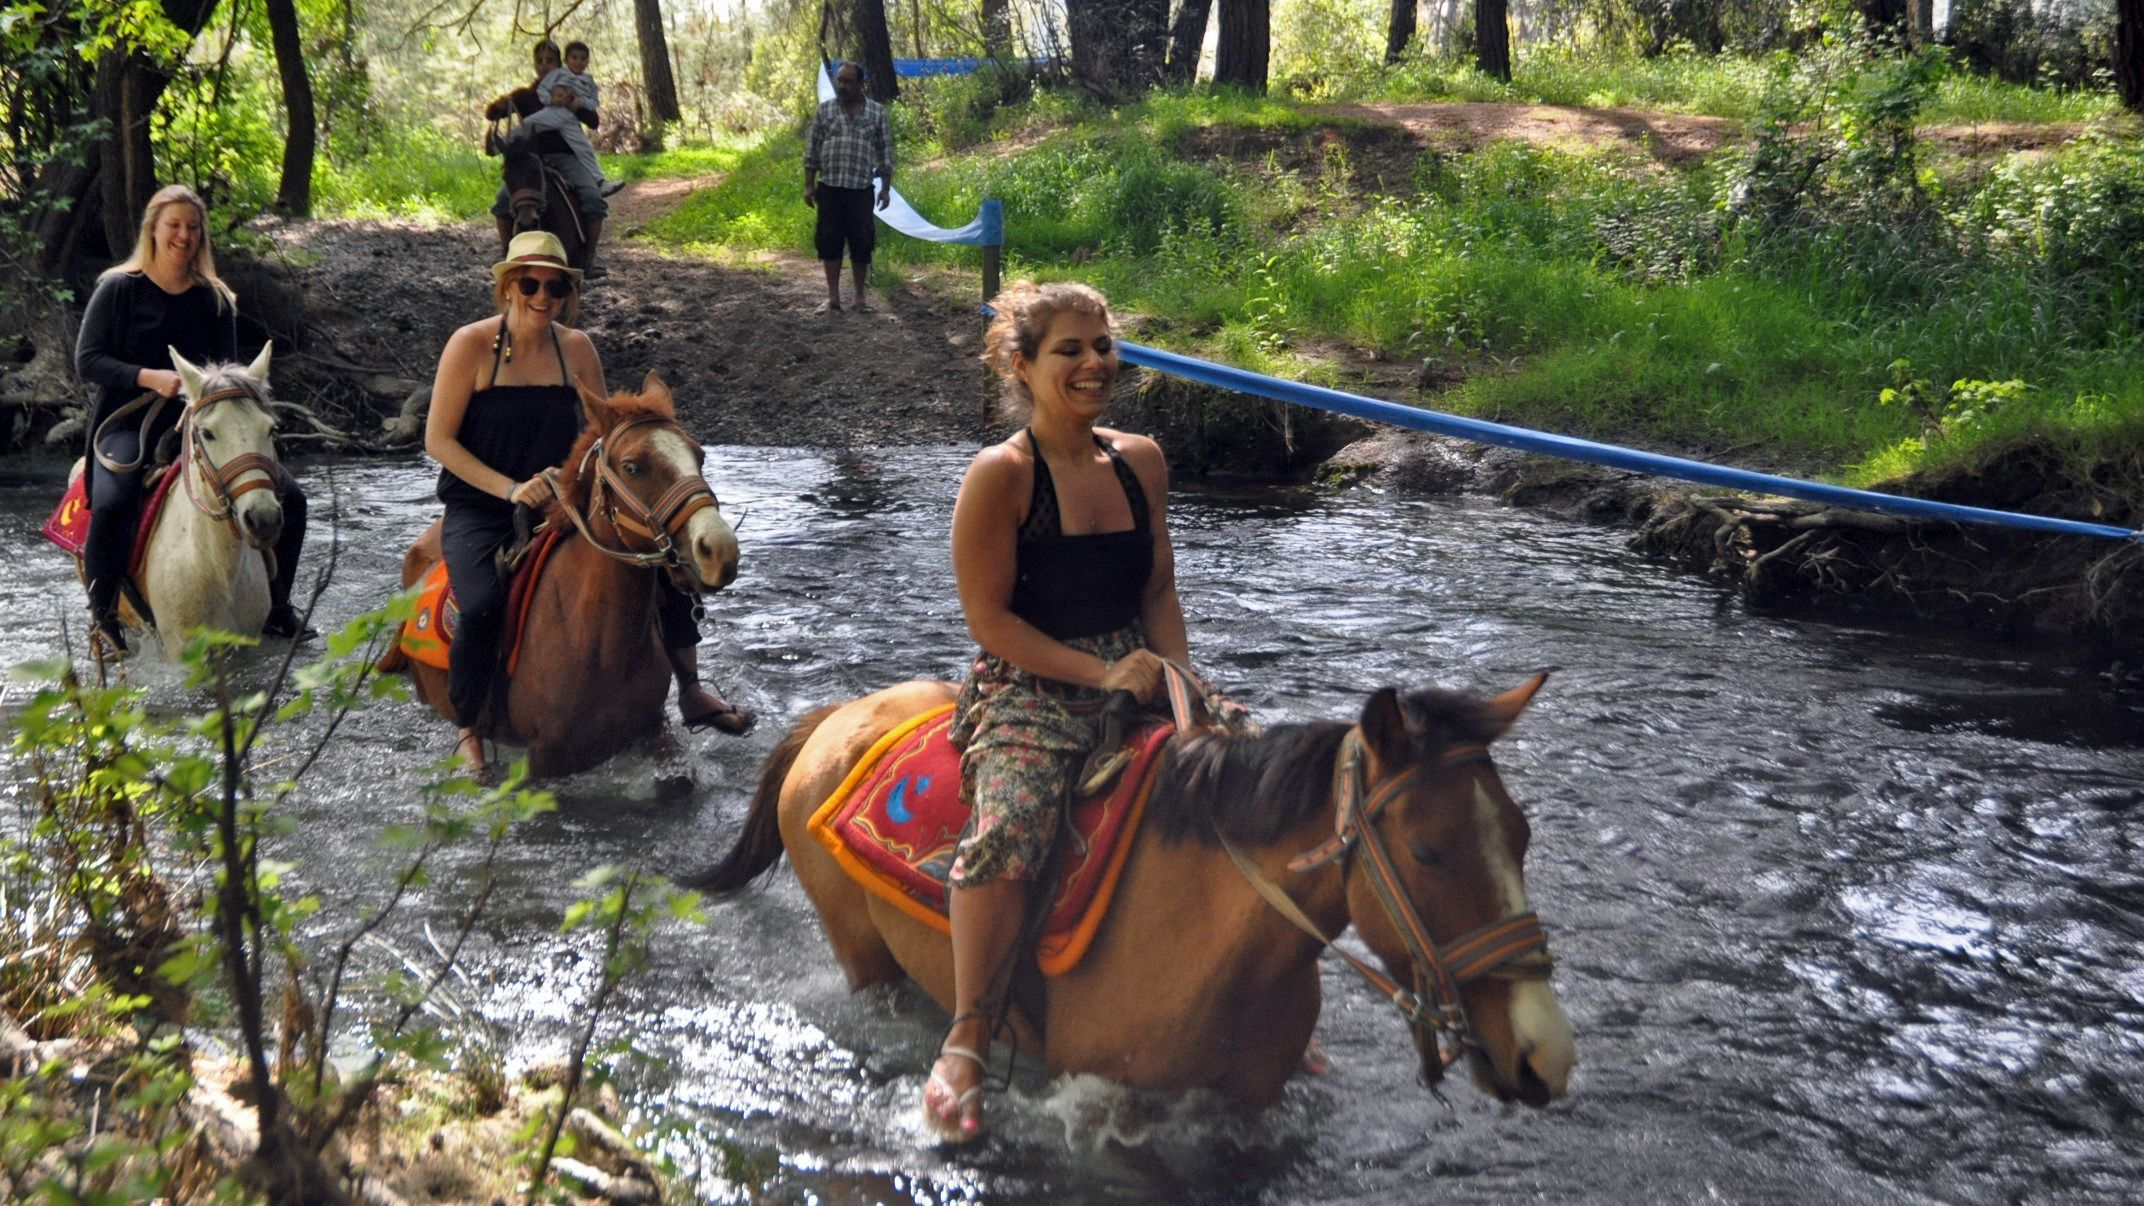 Horseback Riding Experience in Marmaris